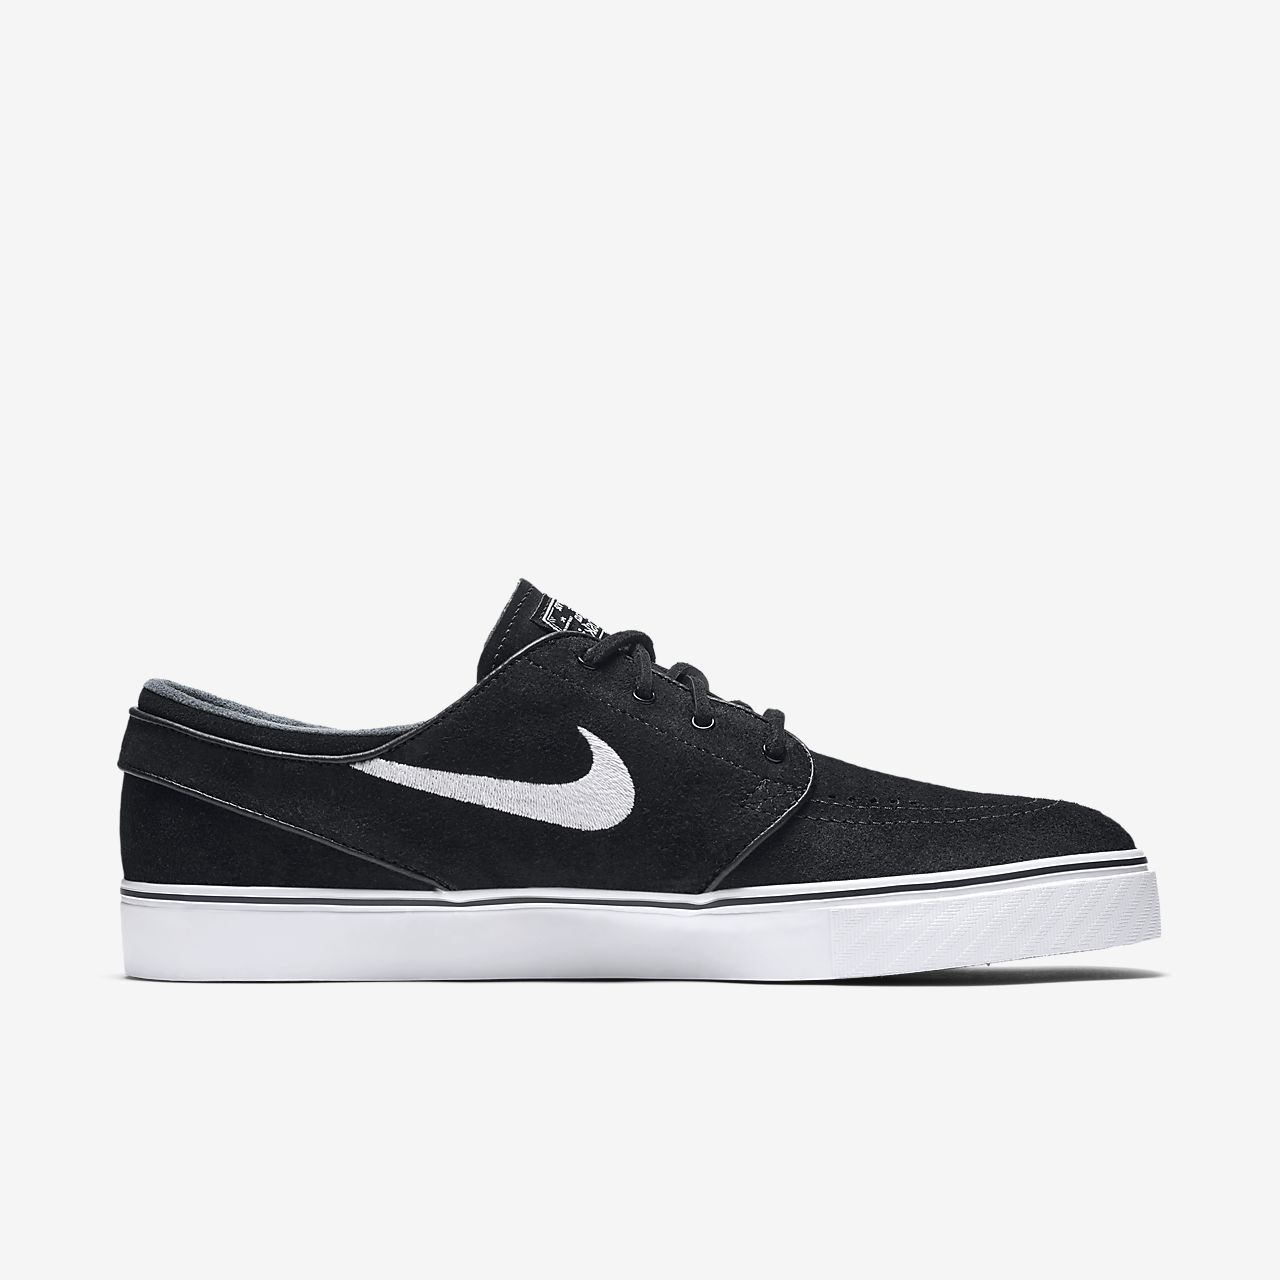 check out 43075 a7cd2 ... Nike SB Zoom Stefan Janoski OG Men s Skate Shoe